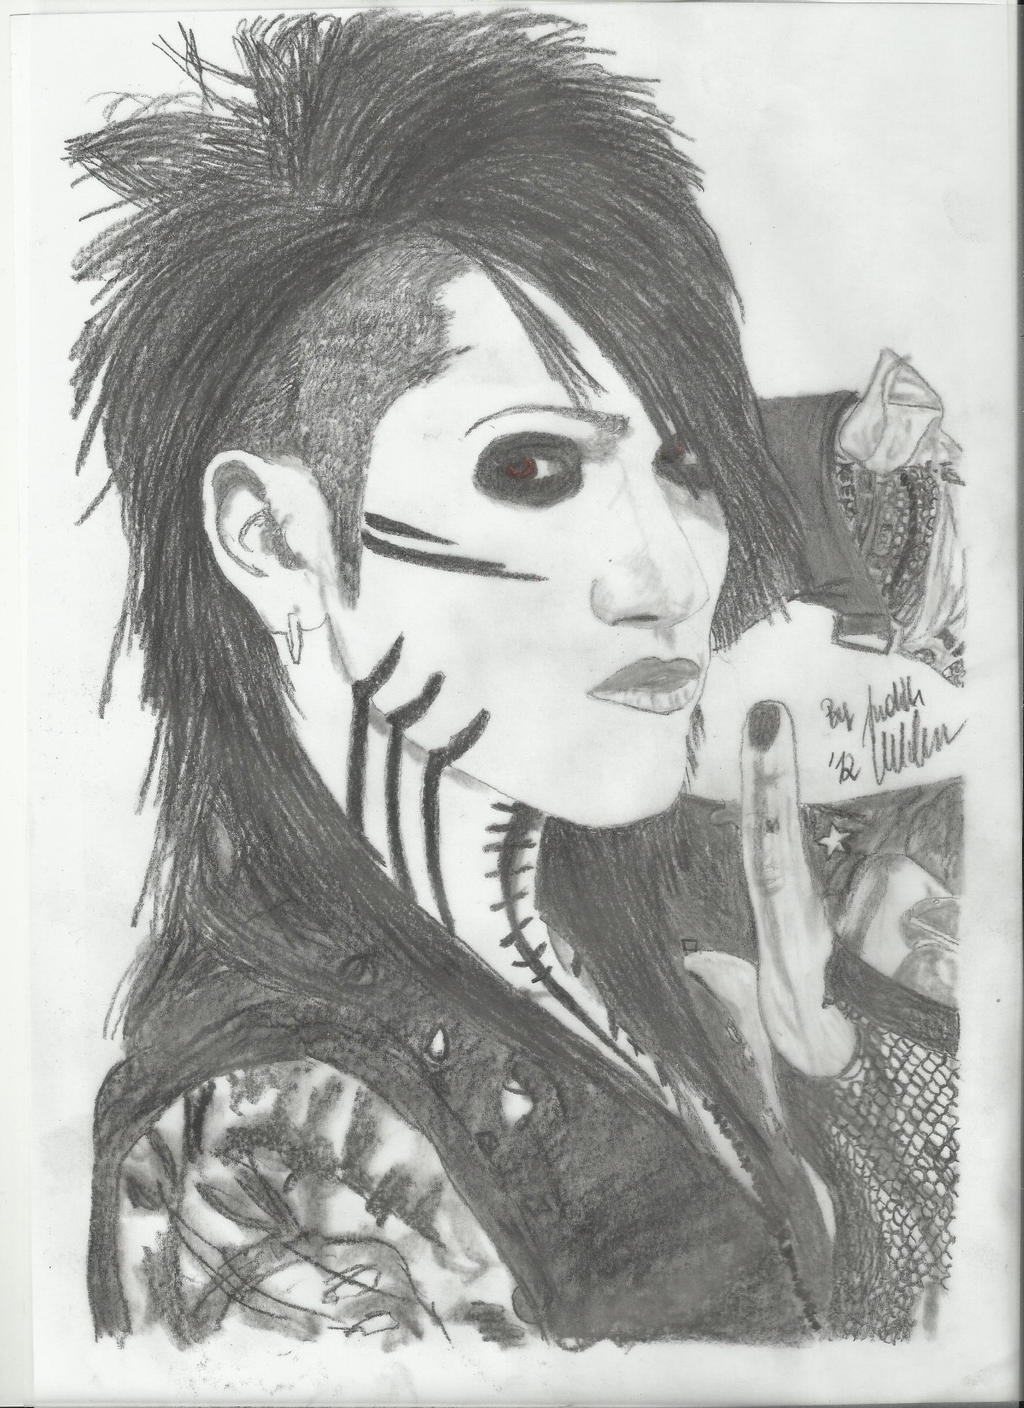 Ashley Purdy BvB by xxdaswarwohlnix on DeviantArt